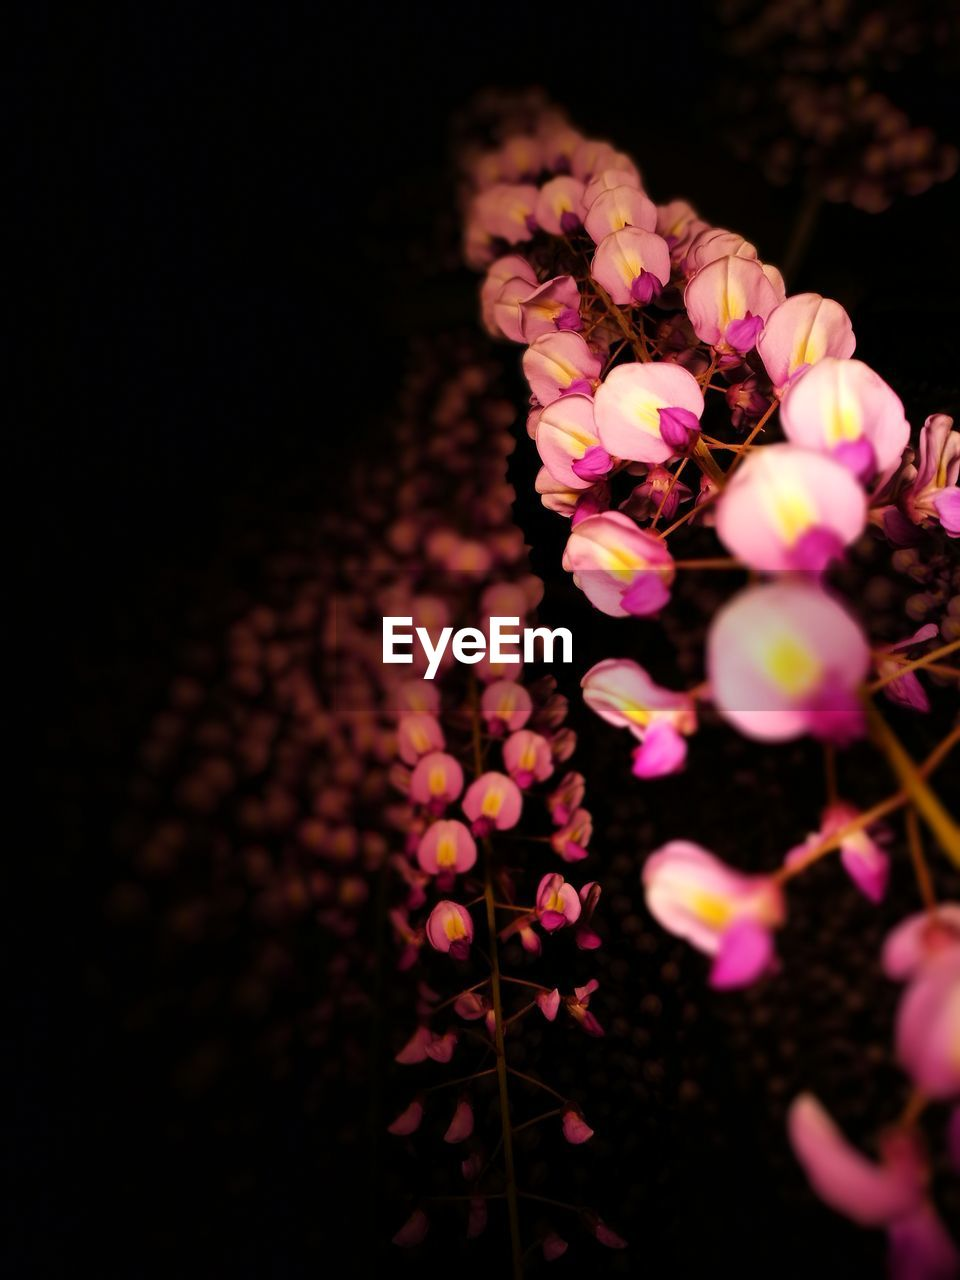 night, no people, flower, close-up, illuminated, outdoors, nature, beauty in nature, freshness